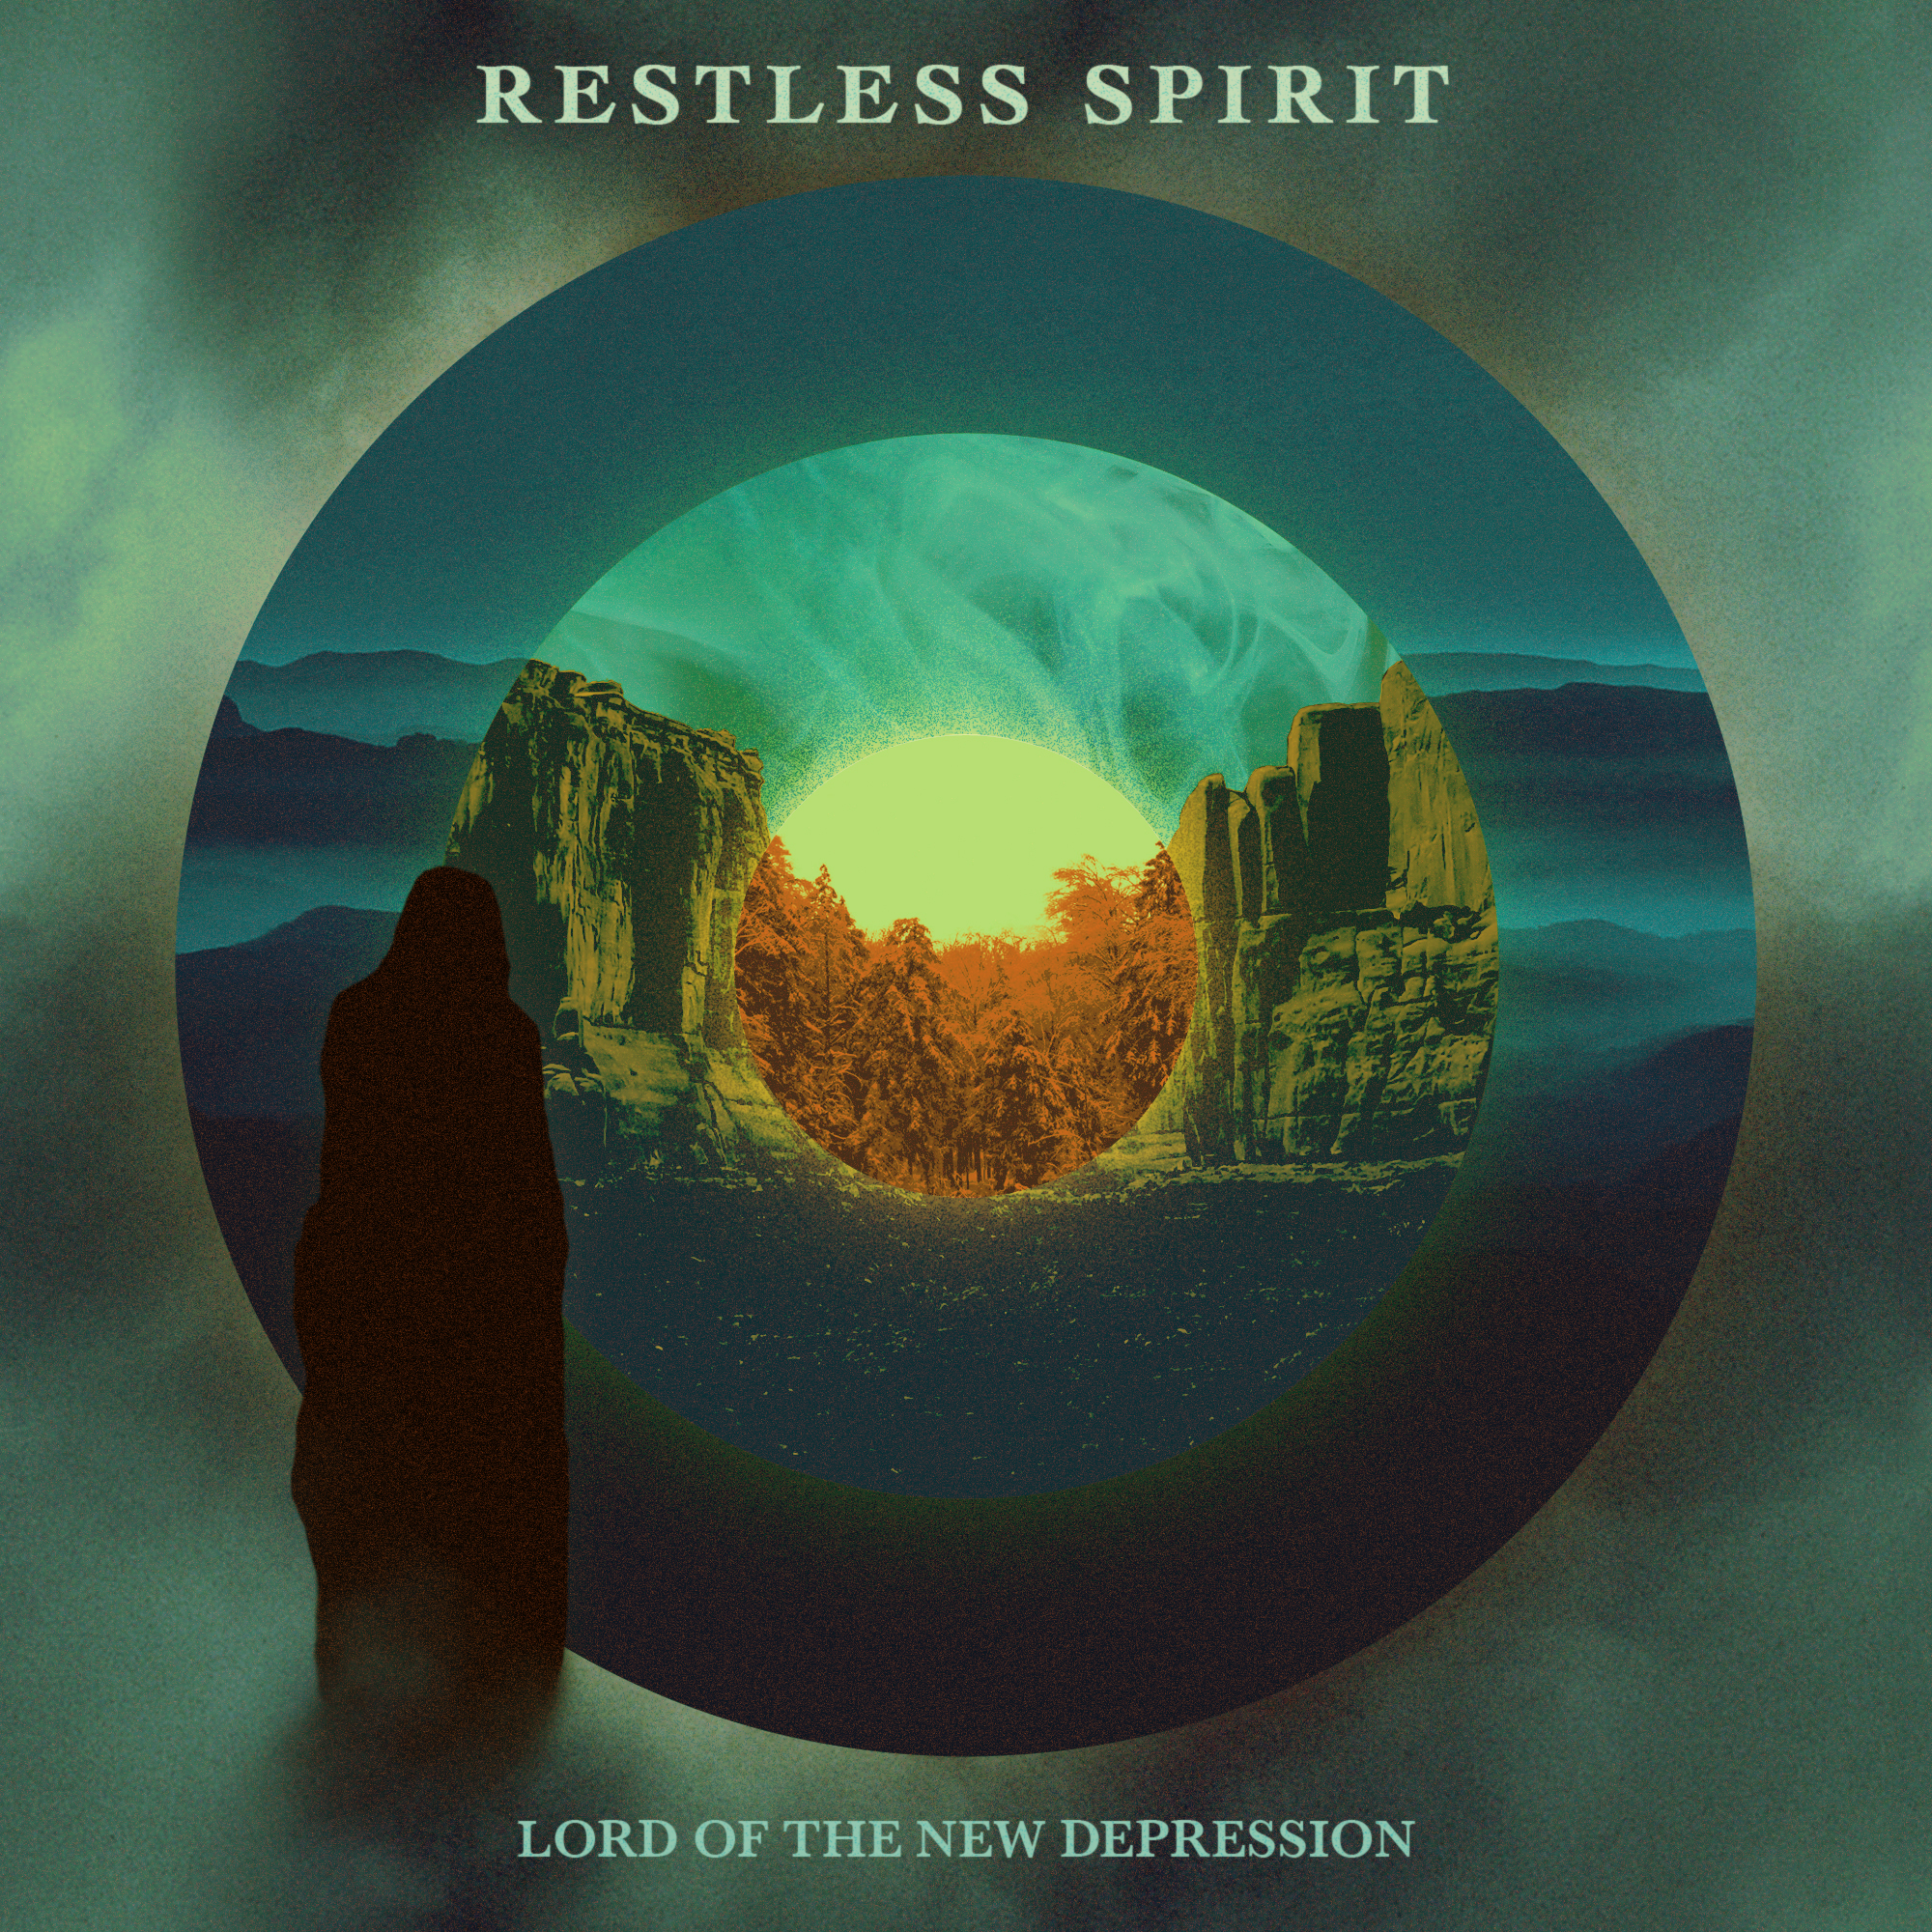 restless spirit lord of the new depression